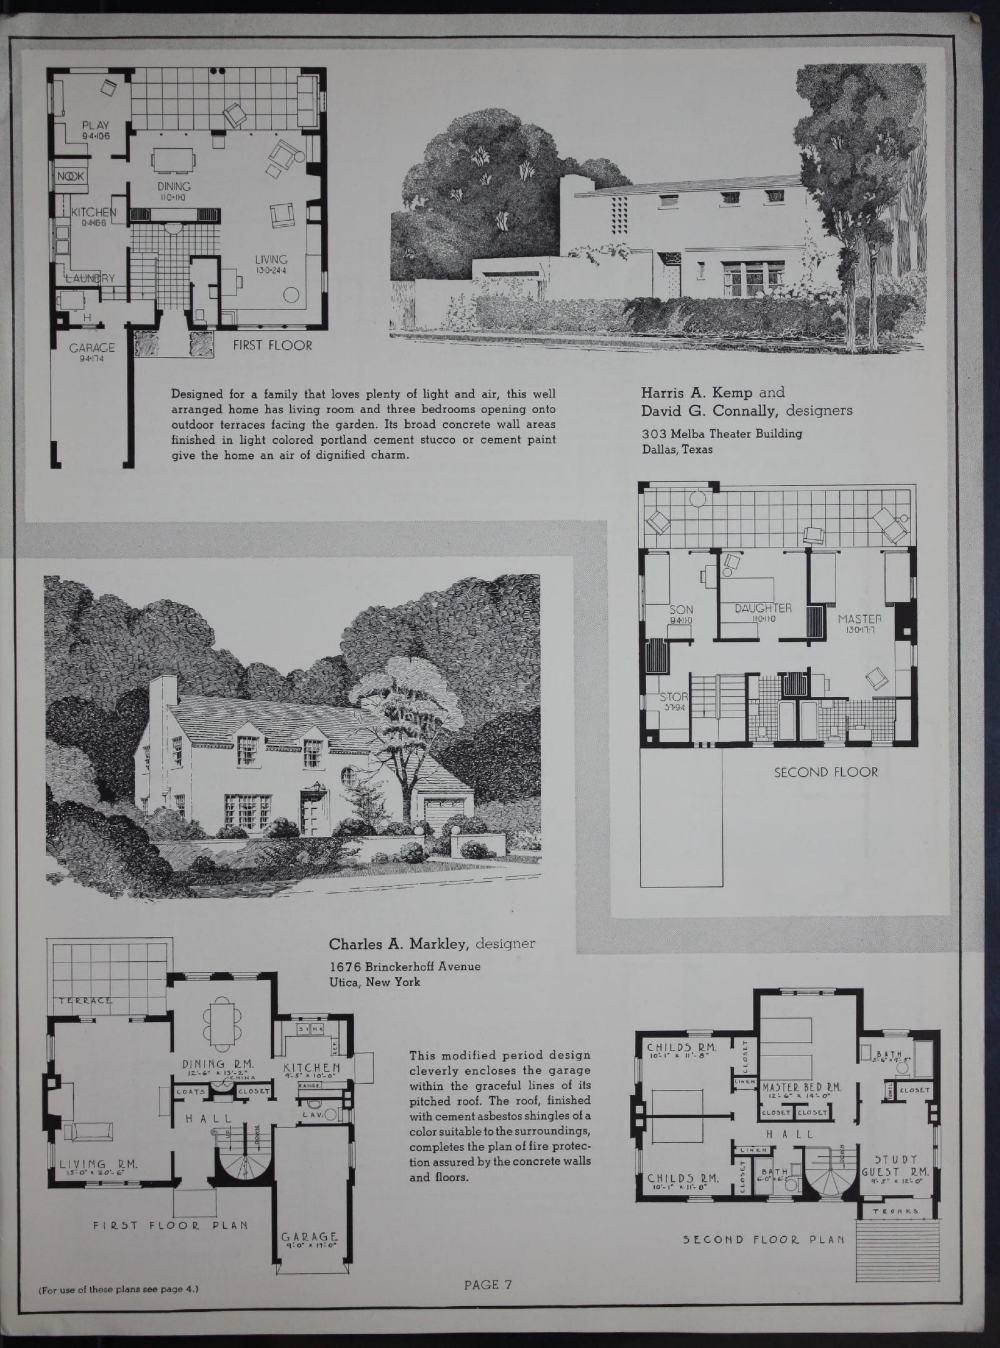 Designed For Concrete 55 Selected Designs From The 1936 Pencil Points Portland Cement Association Architectural Competition For The Design Of Firesafe Concr Architectural Competition Portland Cement Architecture